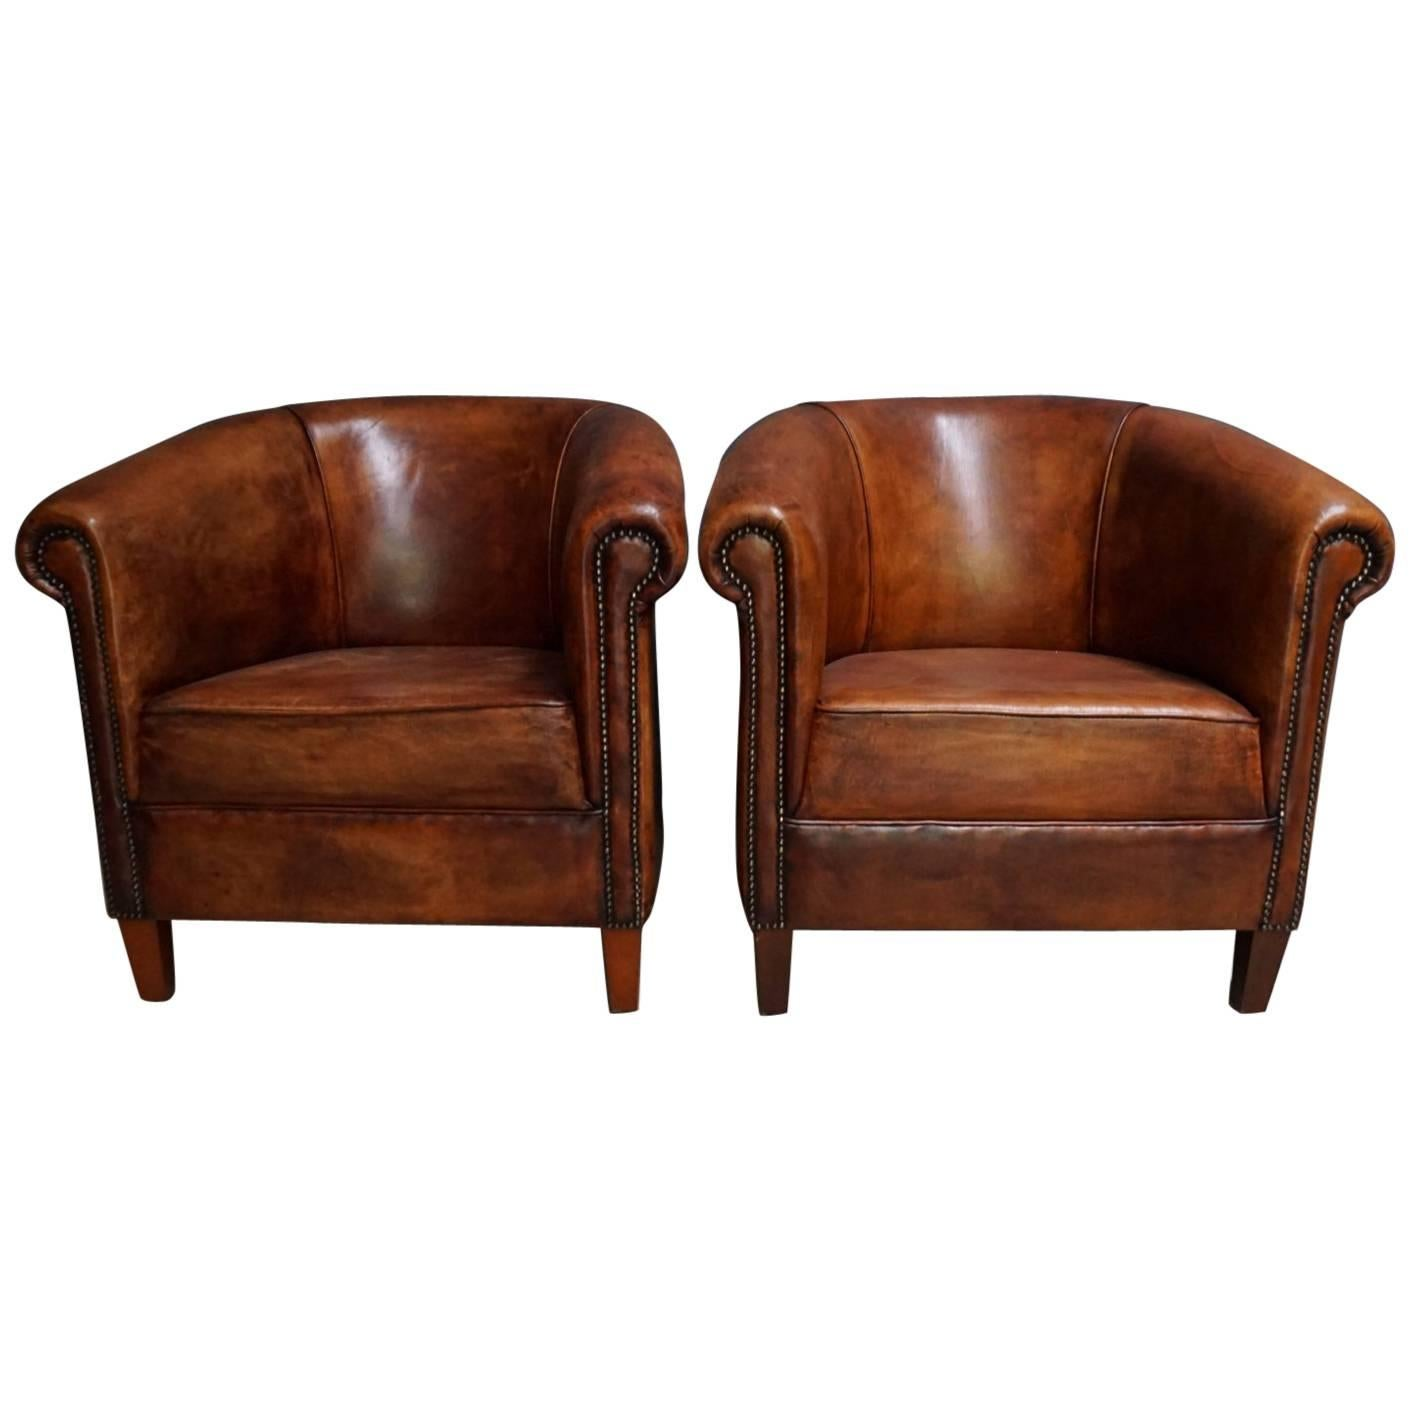 Antique And Vintage Club Chairs   2,693 For Sale At 1stdibs